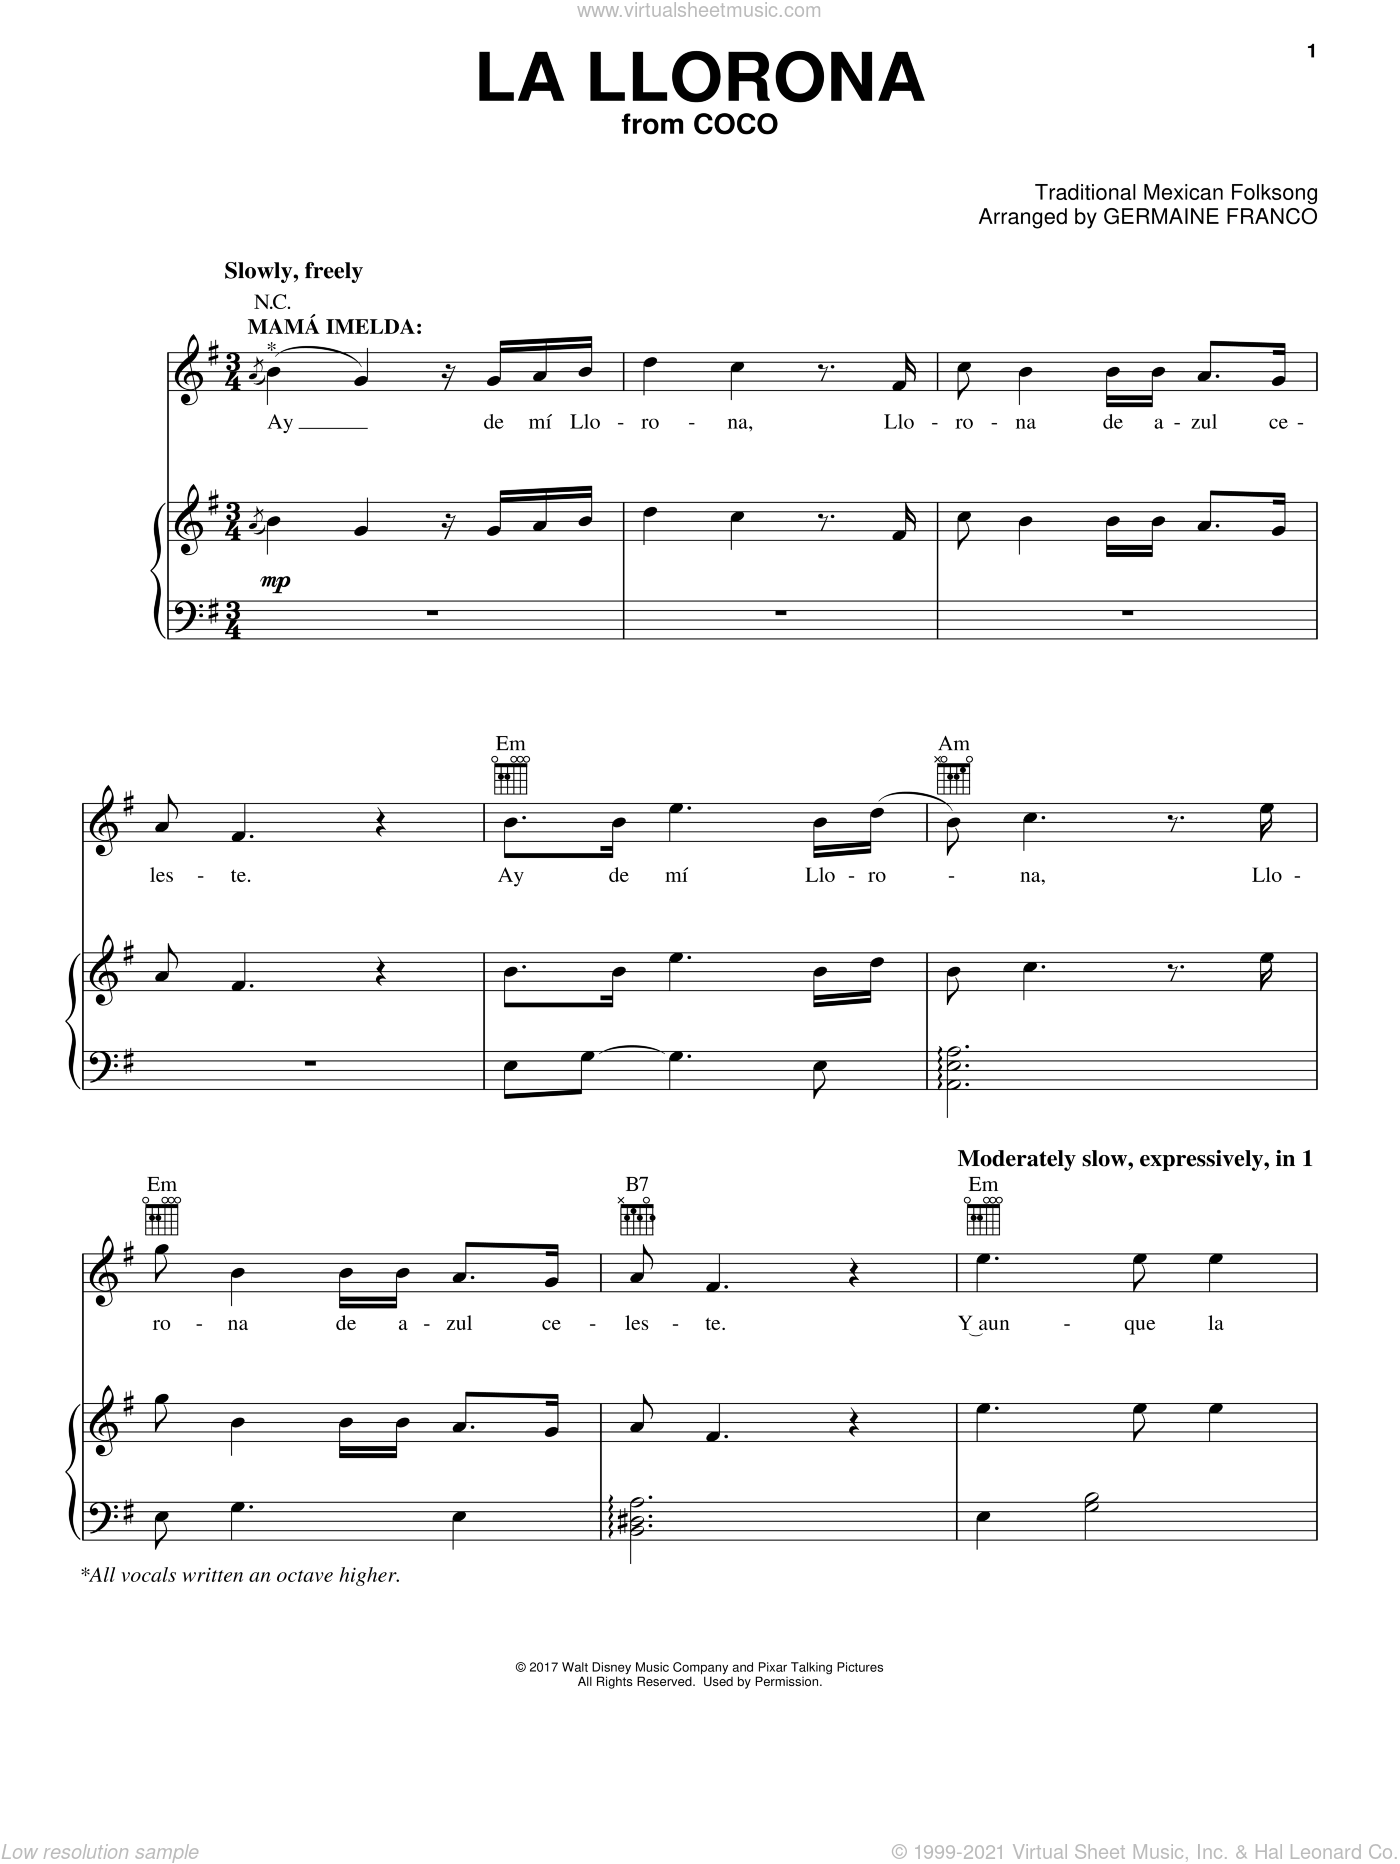 La Llorona sheet music for voice, piano or guitar by Germaine Franco, Coco (Movie) and Traditional Mexican Folksong, intermediate skill level